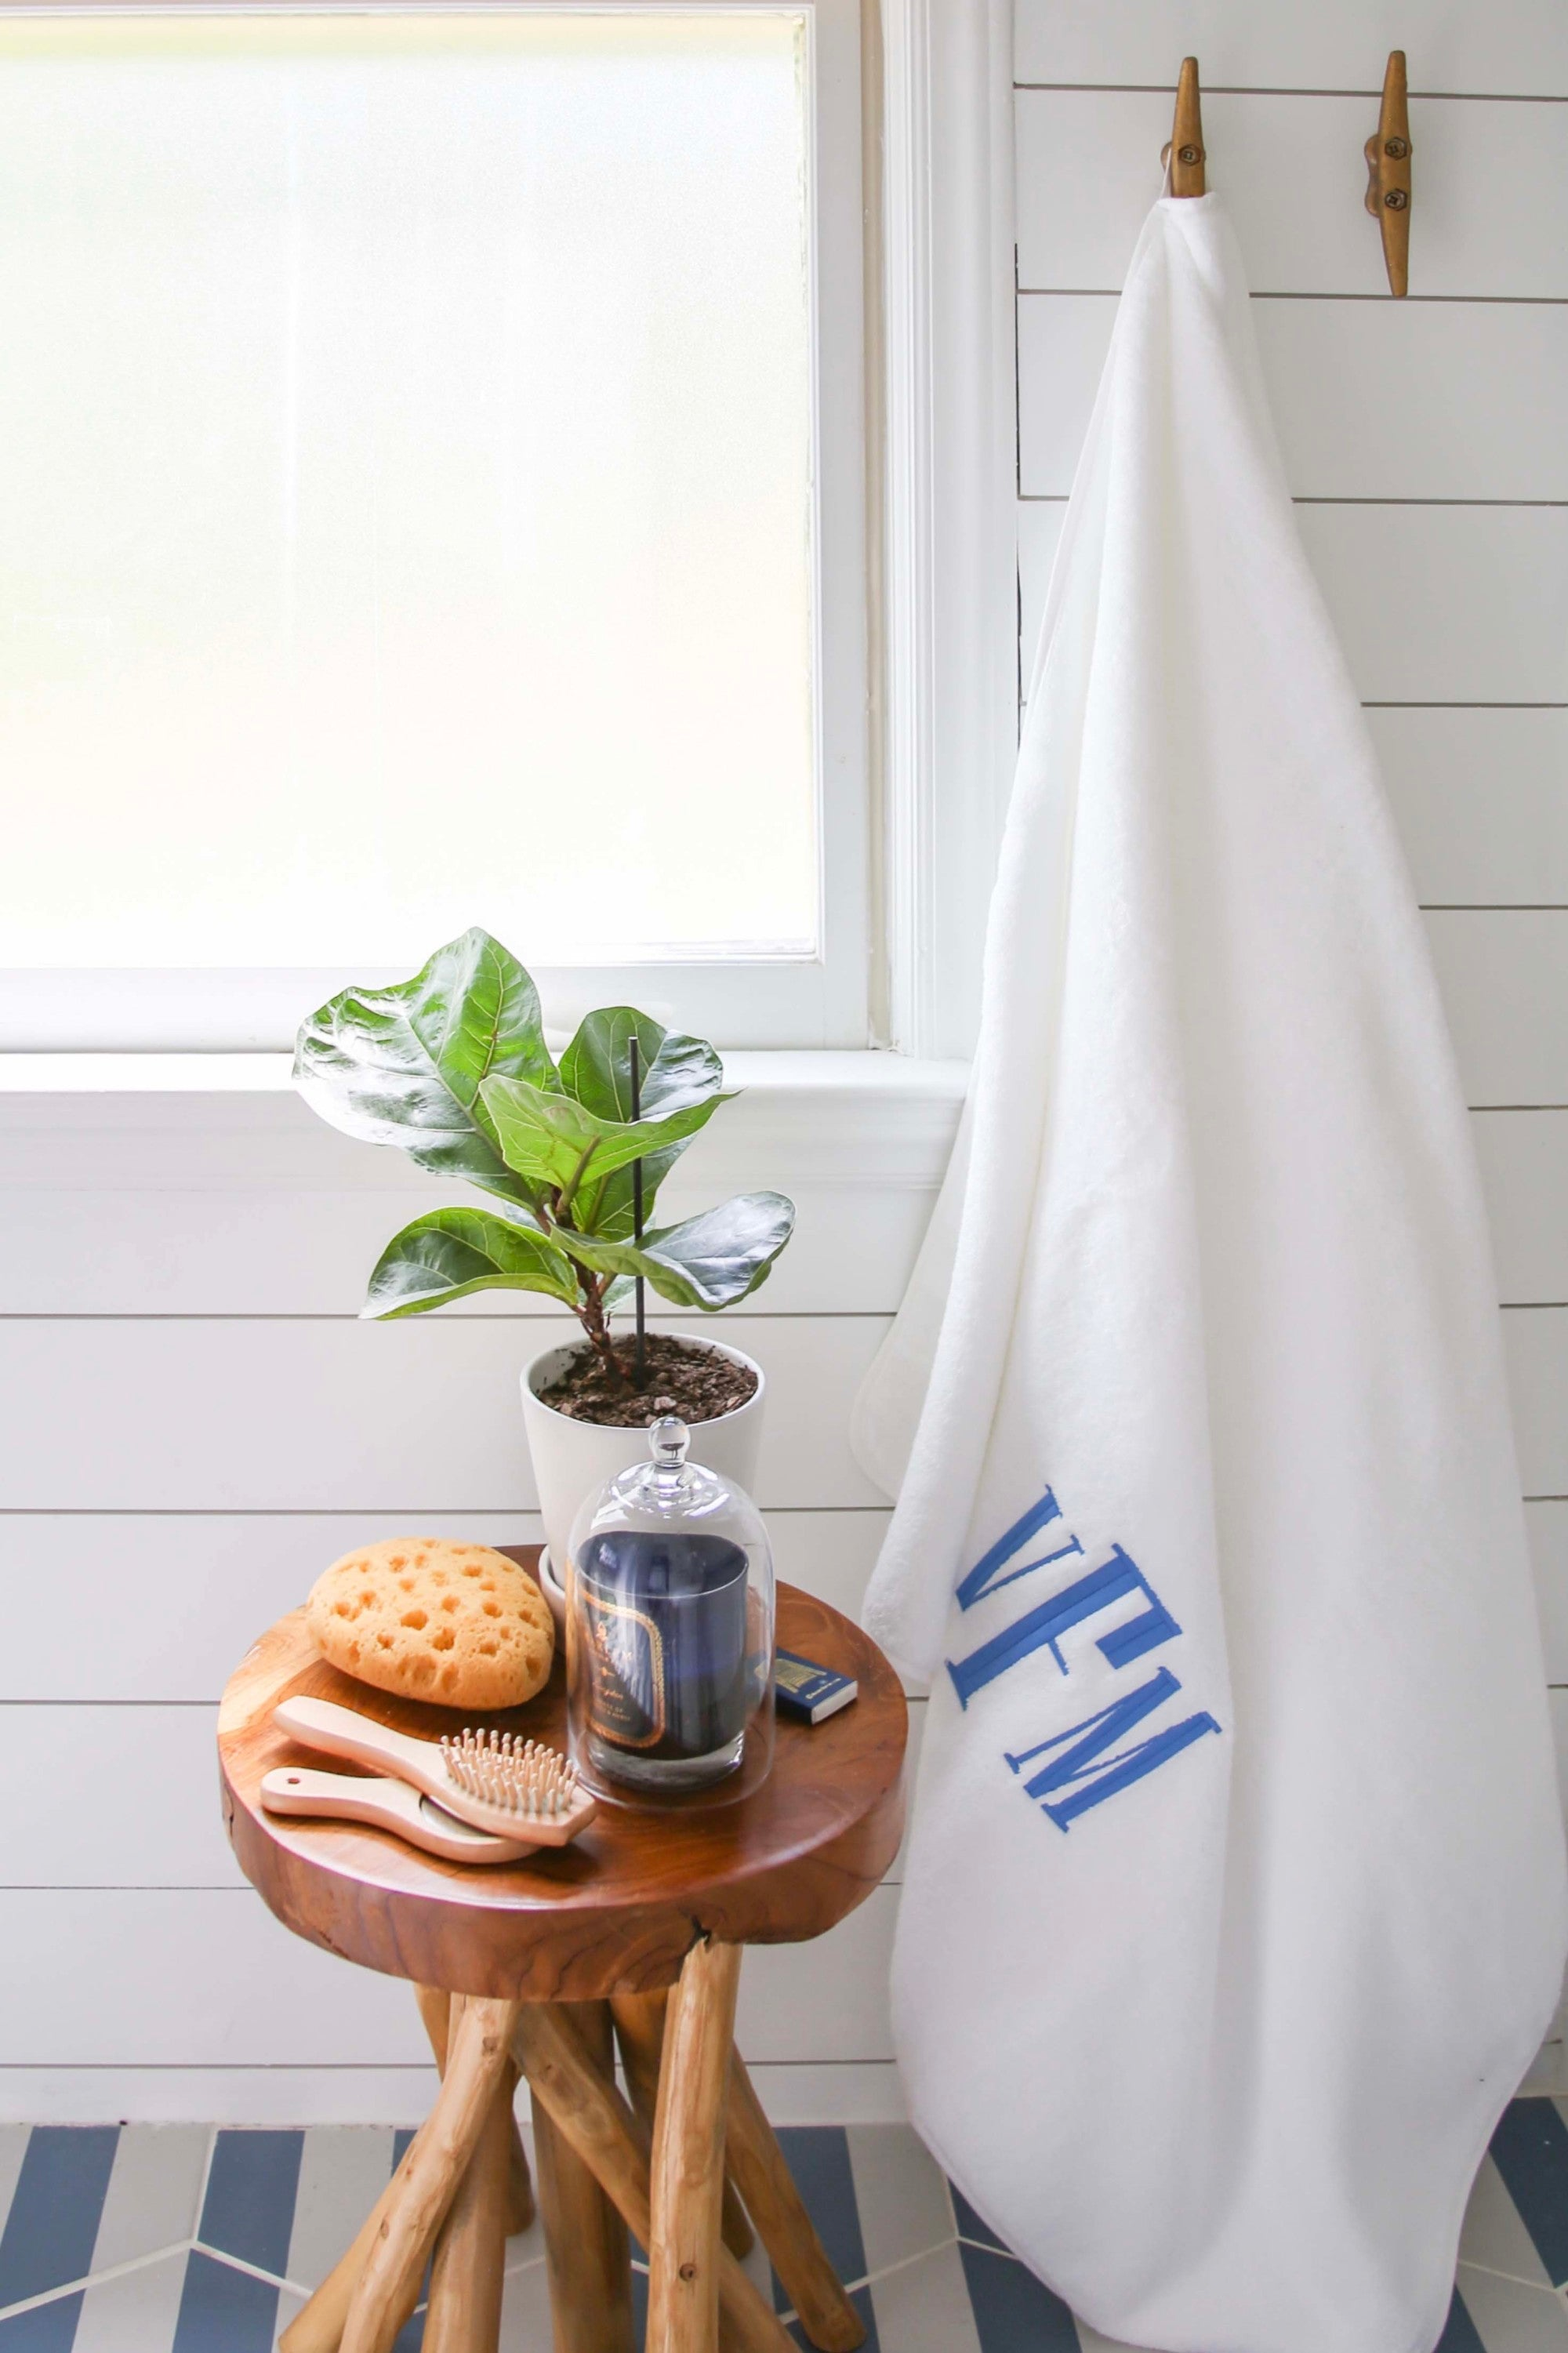 This nautical kids bathroom is packed with small bathroom remodel ideas. These decorative details include monogrammed towels, painted shiplap, and greenery. The paint is Fresh Kicks by Clare.